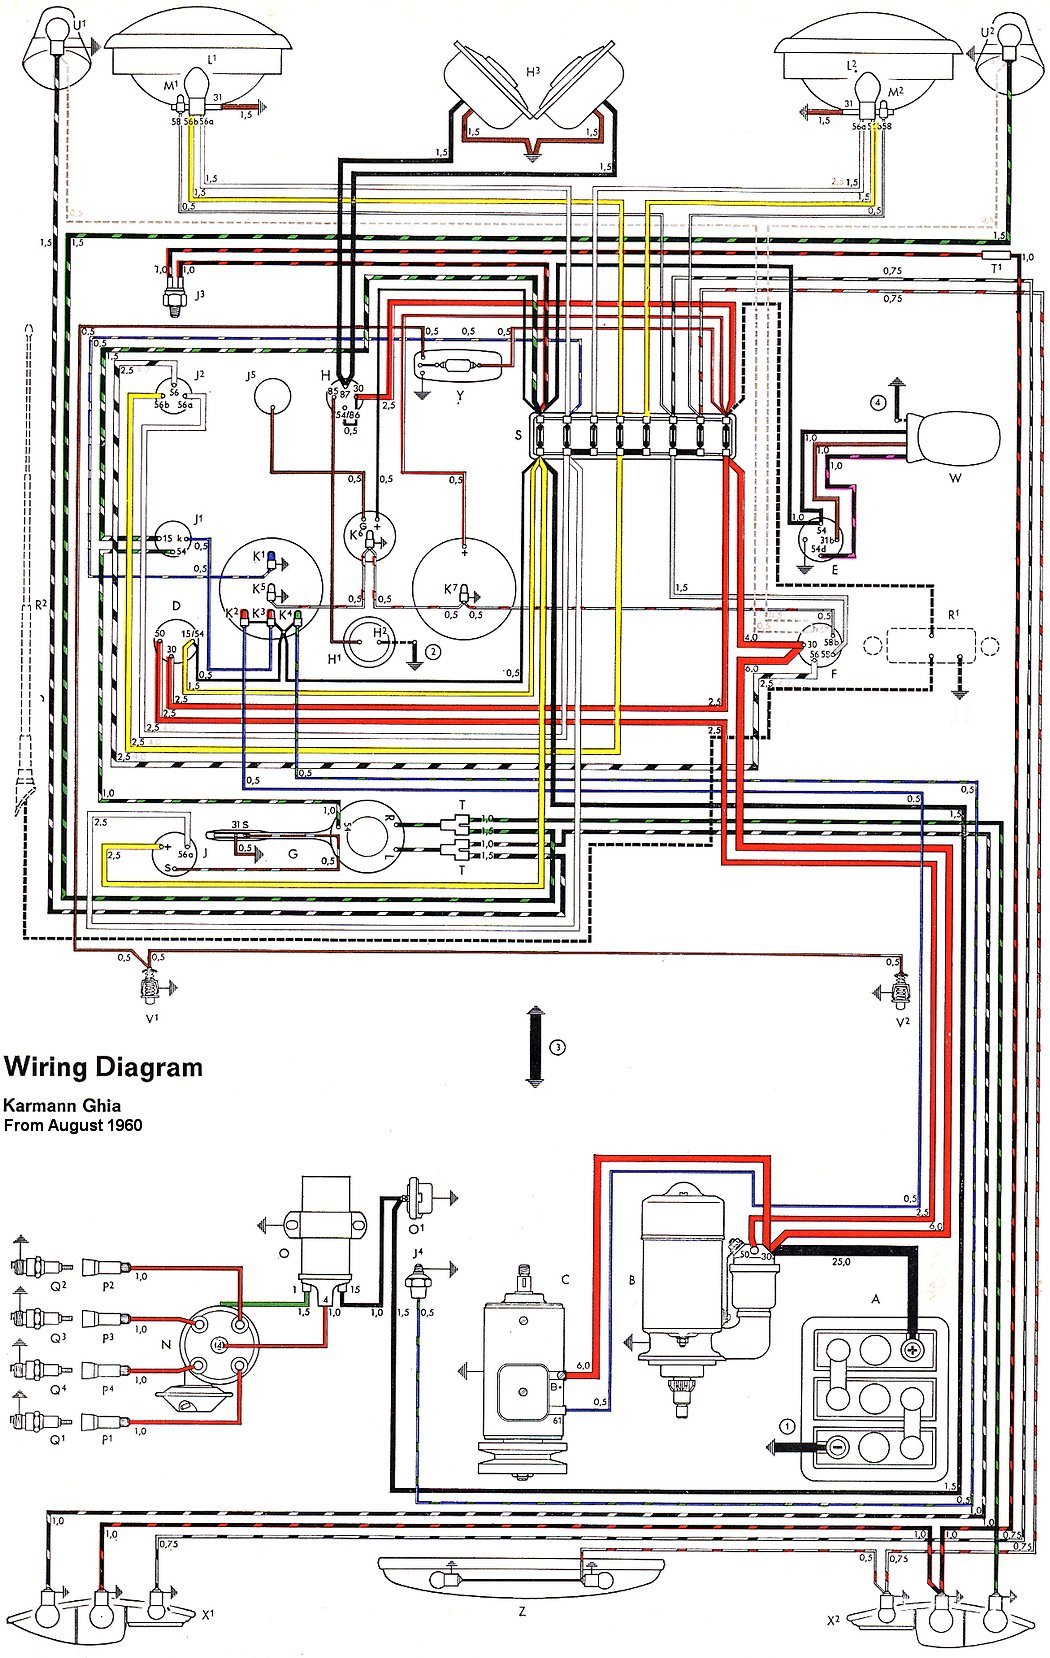 thesamba.com :: karmann ghia wiring diagrams ghia wiring diagram 1968 karmann ghia wiring diagram